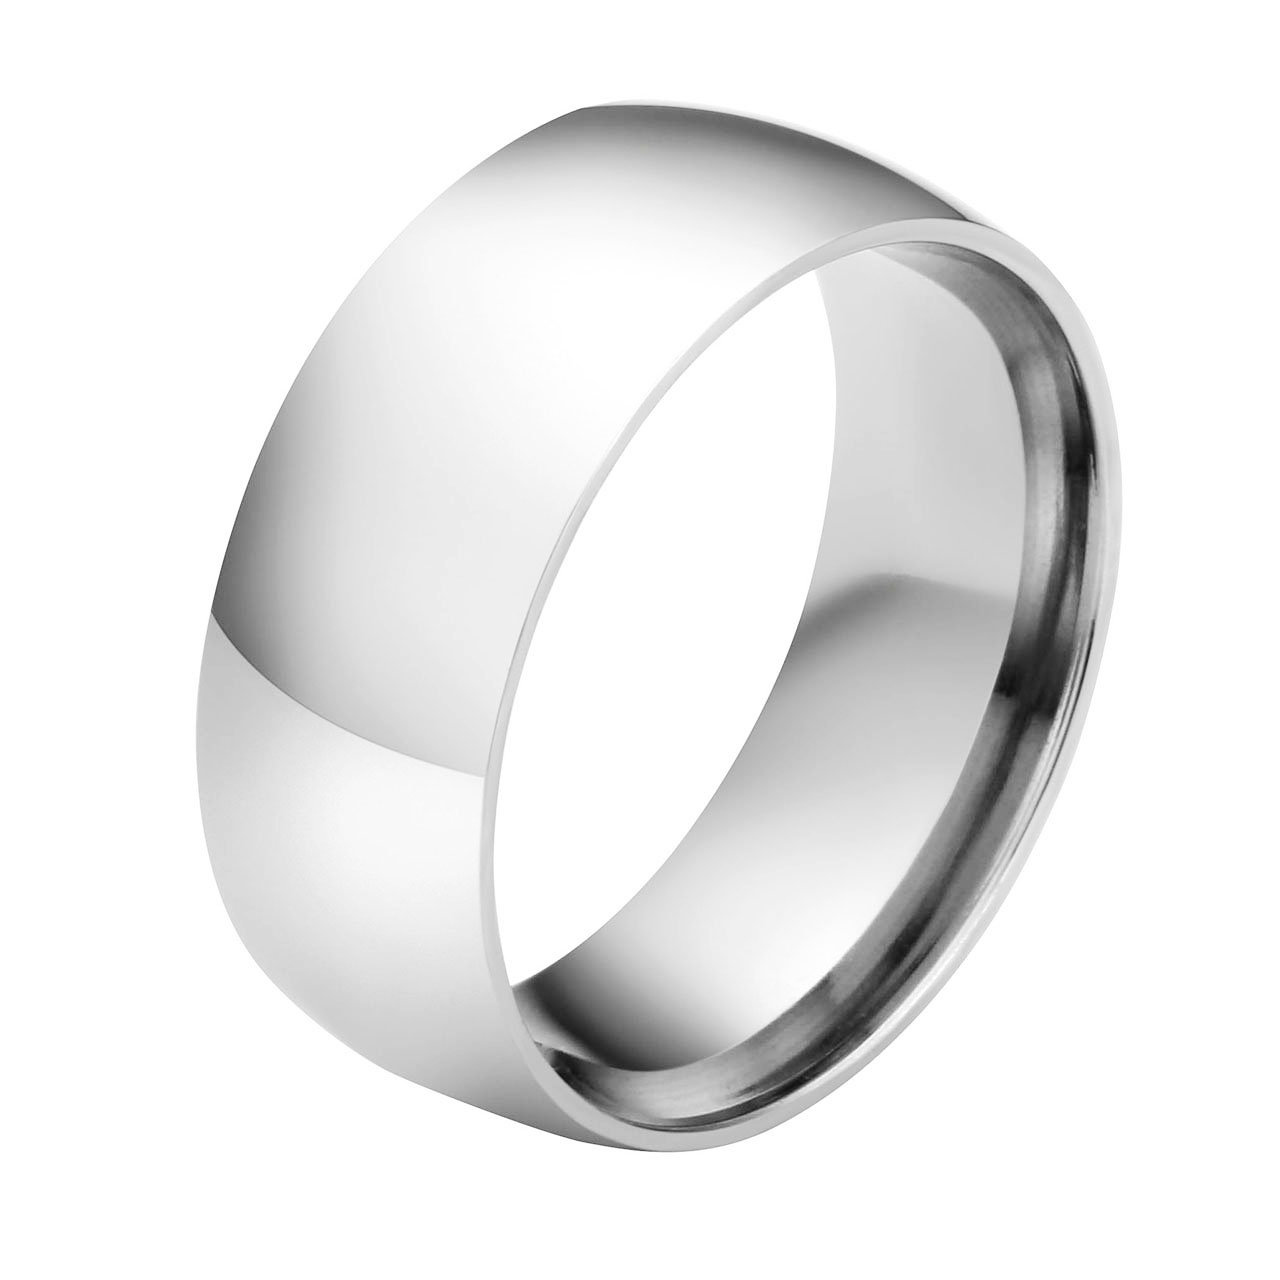 Jovivi Custom Band Rings - Personalized Name Message Engraved 8mm Stainless Steel Classic Silver Ring Engagement Wedding Band by Jovivi (Image #1)